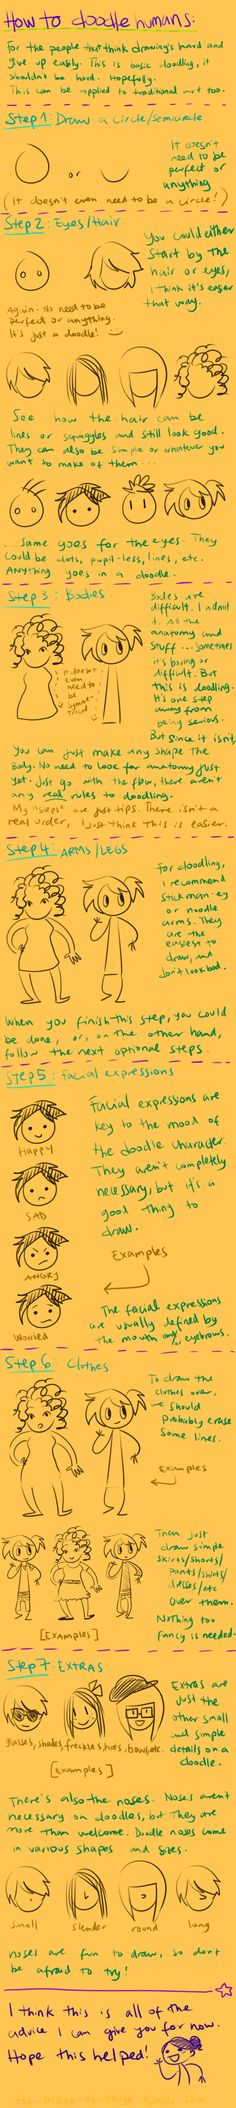 doodling tutorial by Mistakes13.devian...